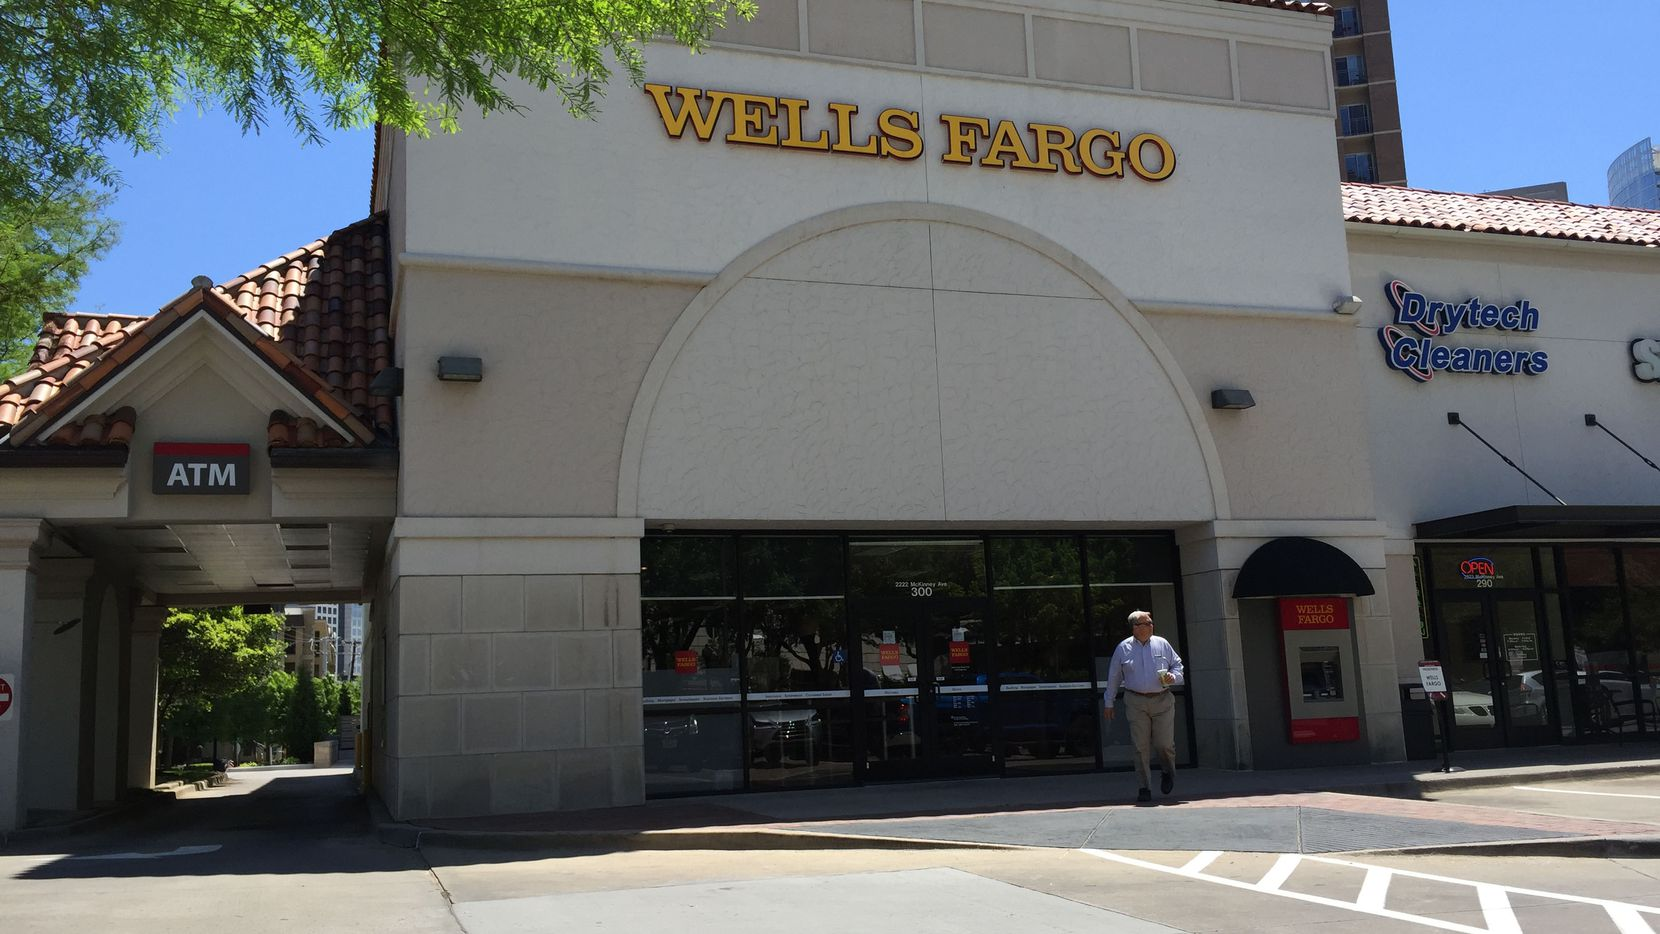 There are still more than 1,600 retail banking locations in North Texas.